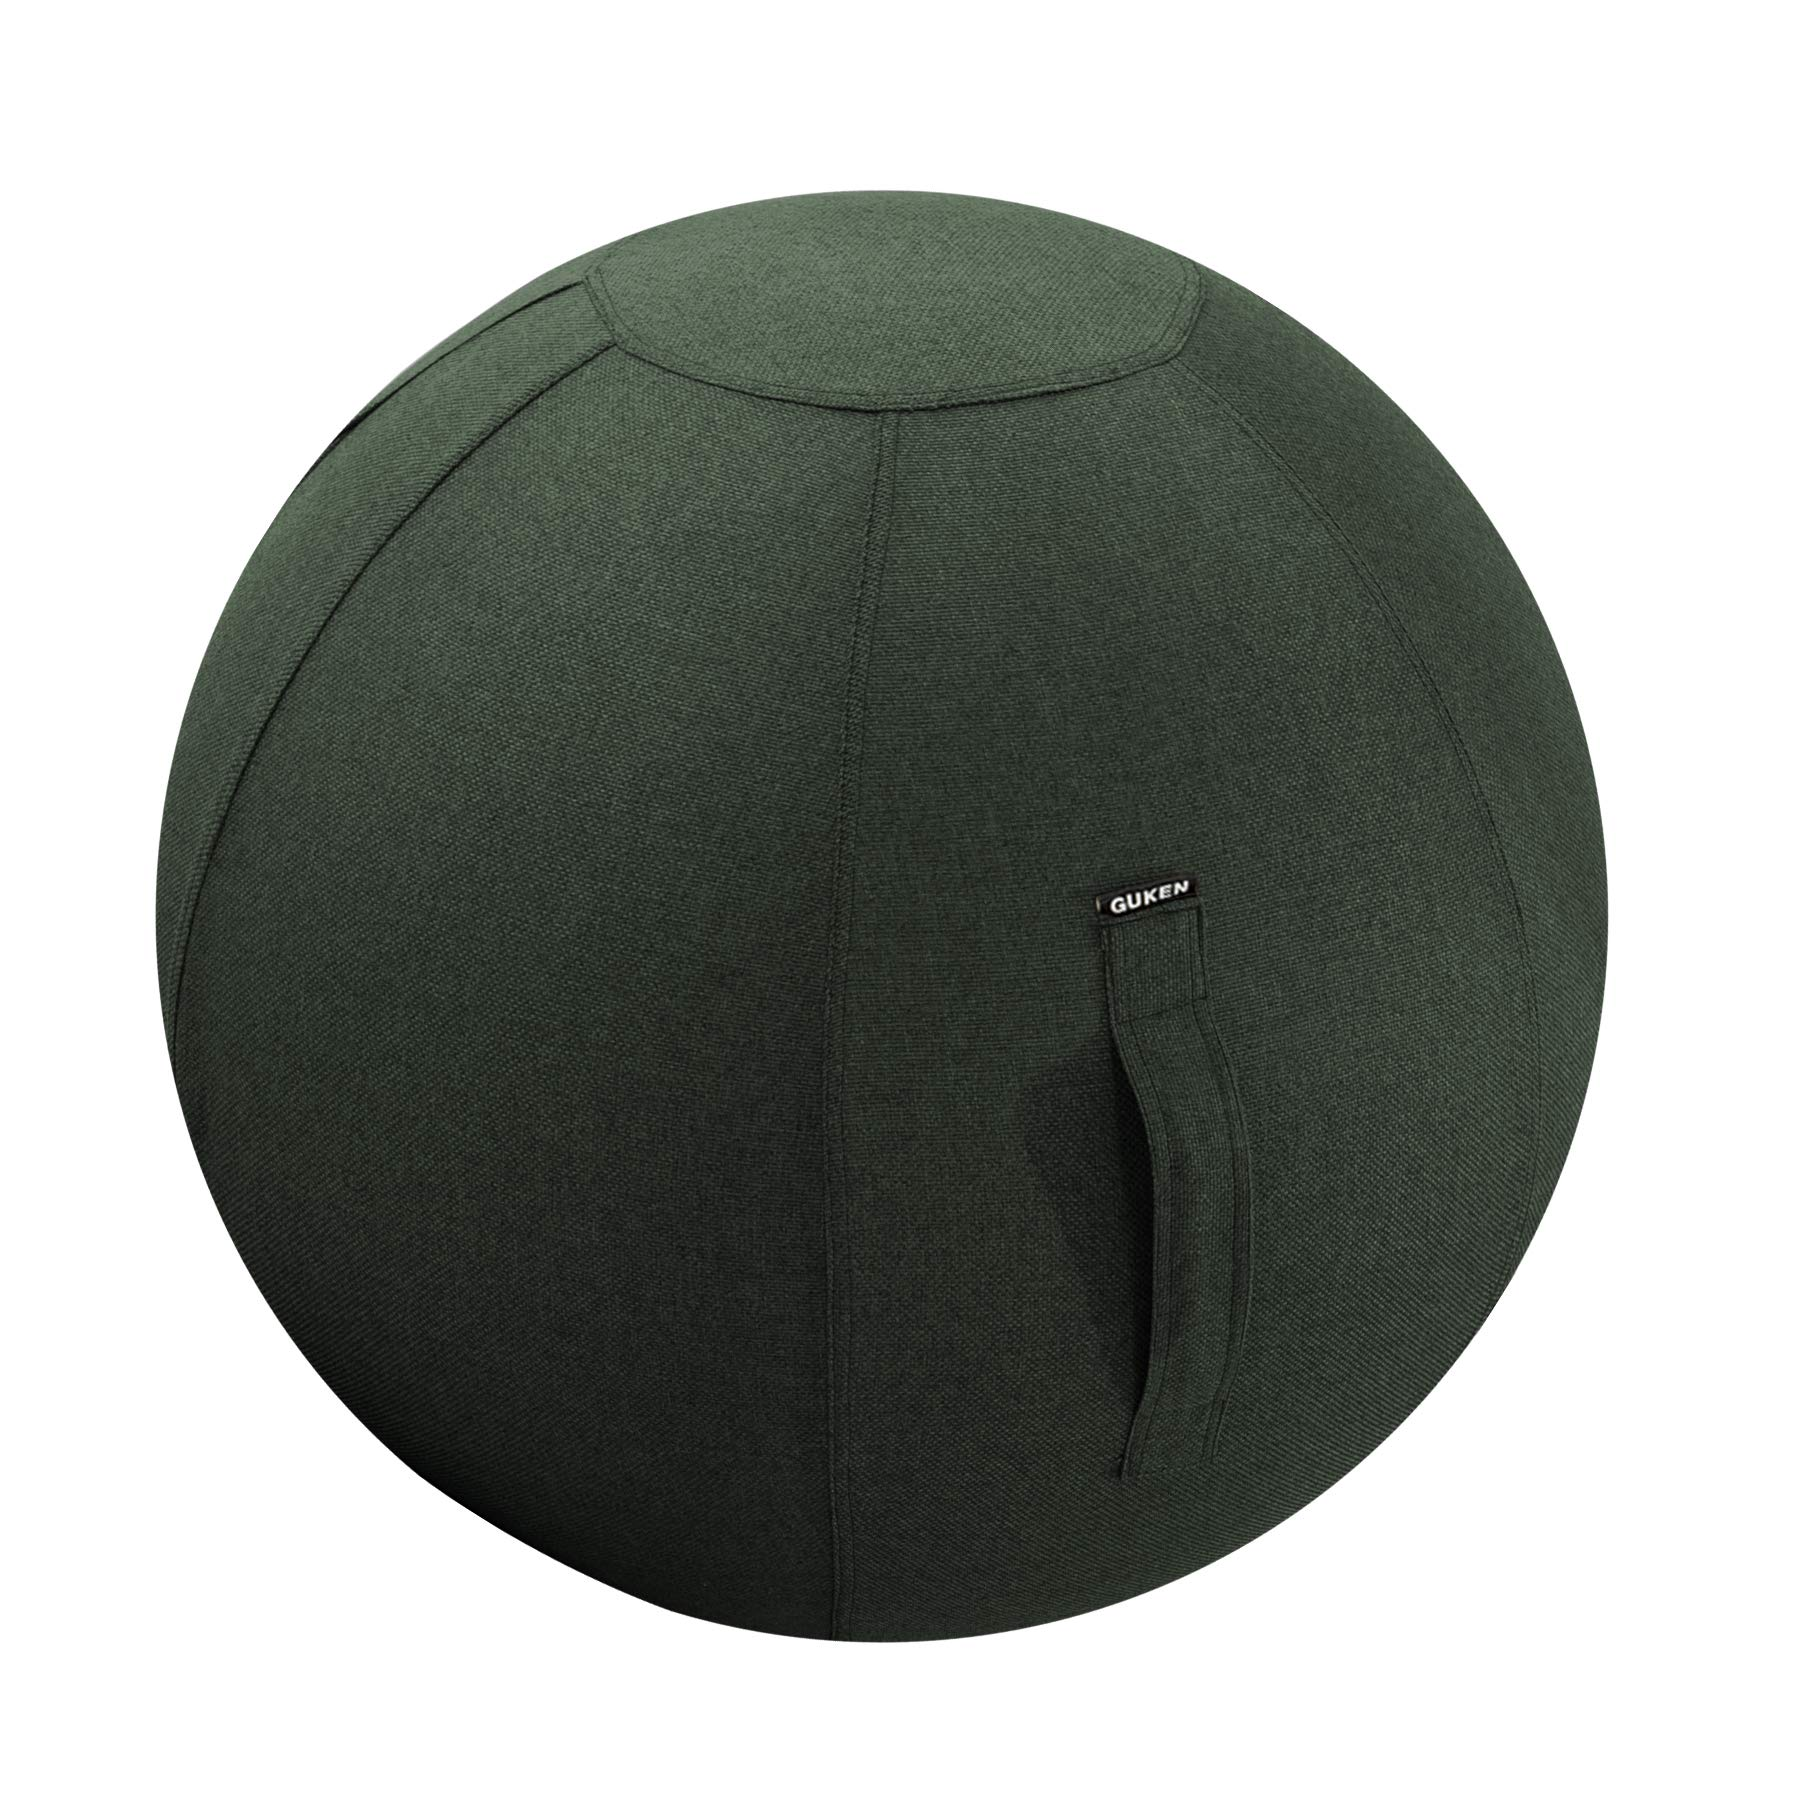 Guken Yoga Ball Cover, Sitting Ball Chair for Office and Home, Lightweight Self-Standing Ergonomic Posture Activating Exercise Ball Solution with Handle & Cover, Classroom & YogaEasy (65CM, Green)